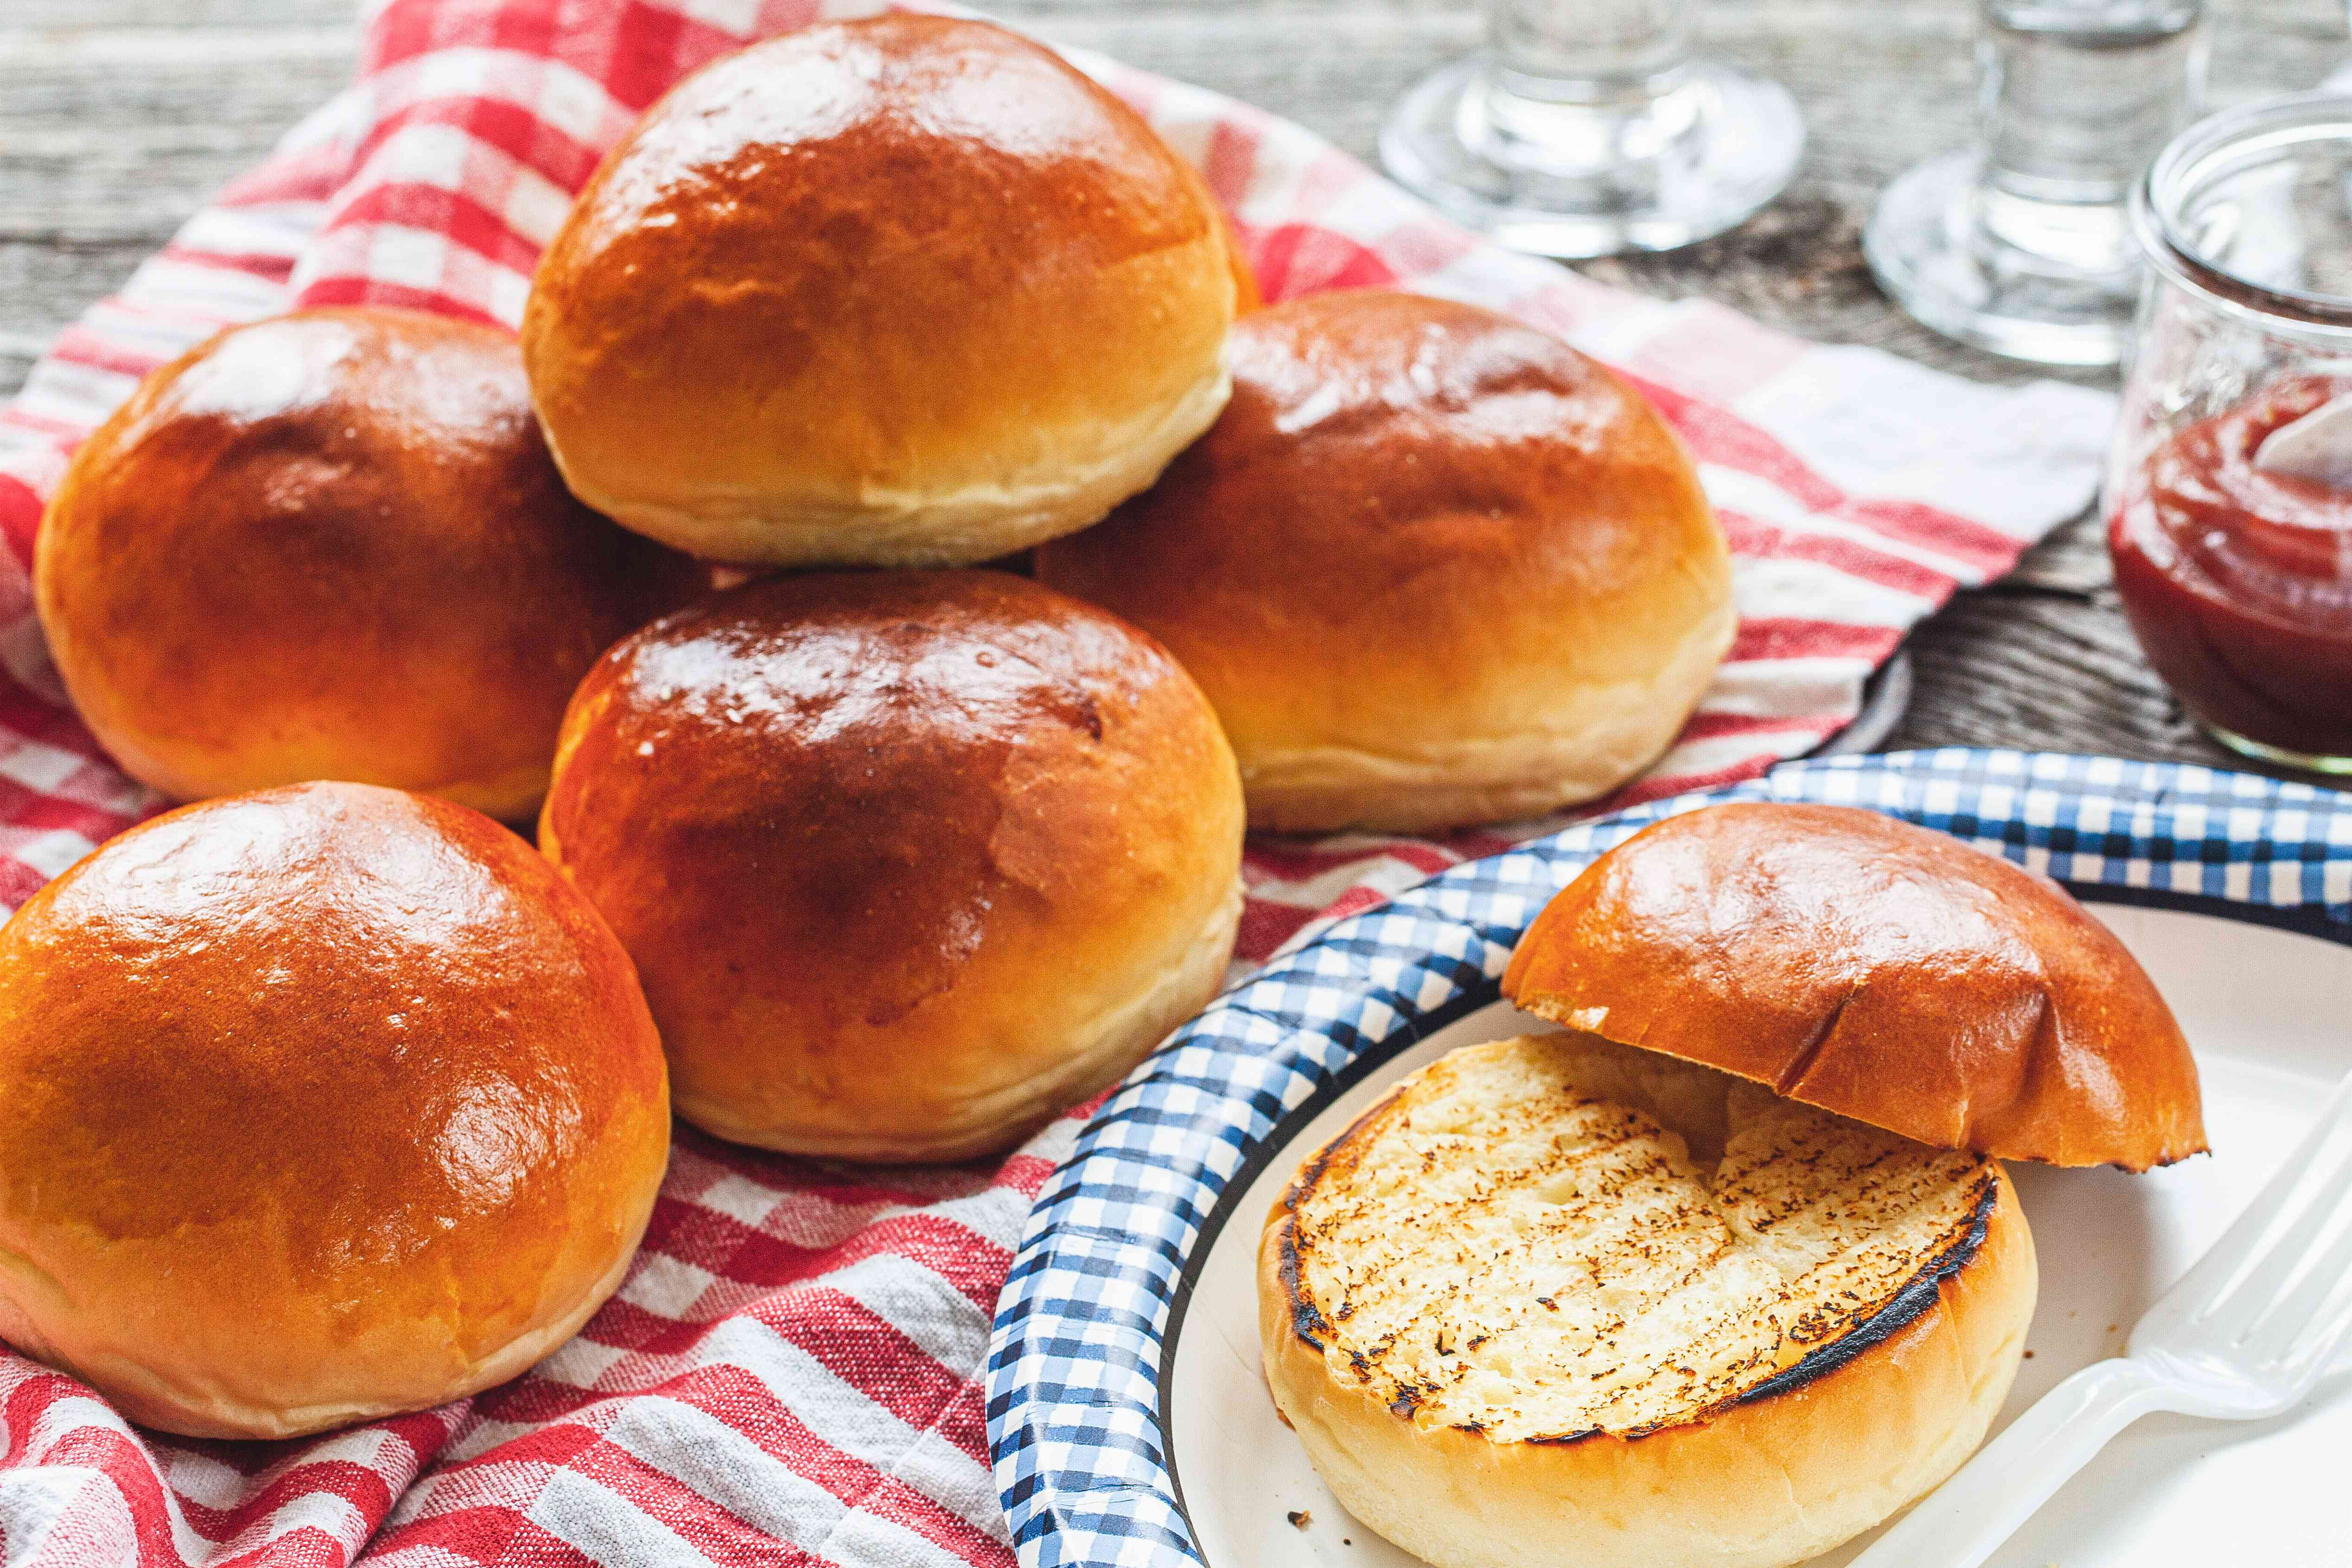 Homemade hamburger buns grilled and on a checkered linen.